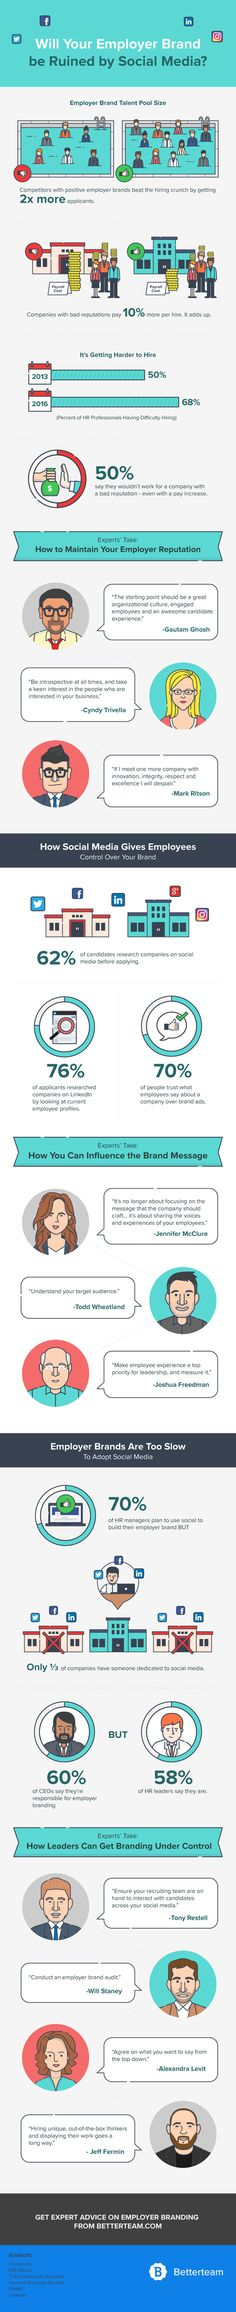 [Infographic] Employer Branding - Should You Treat Employees Like Customers?